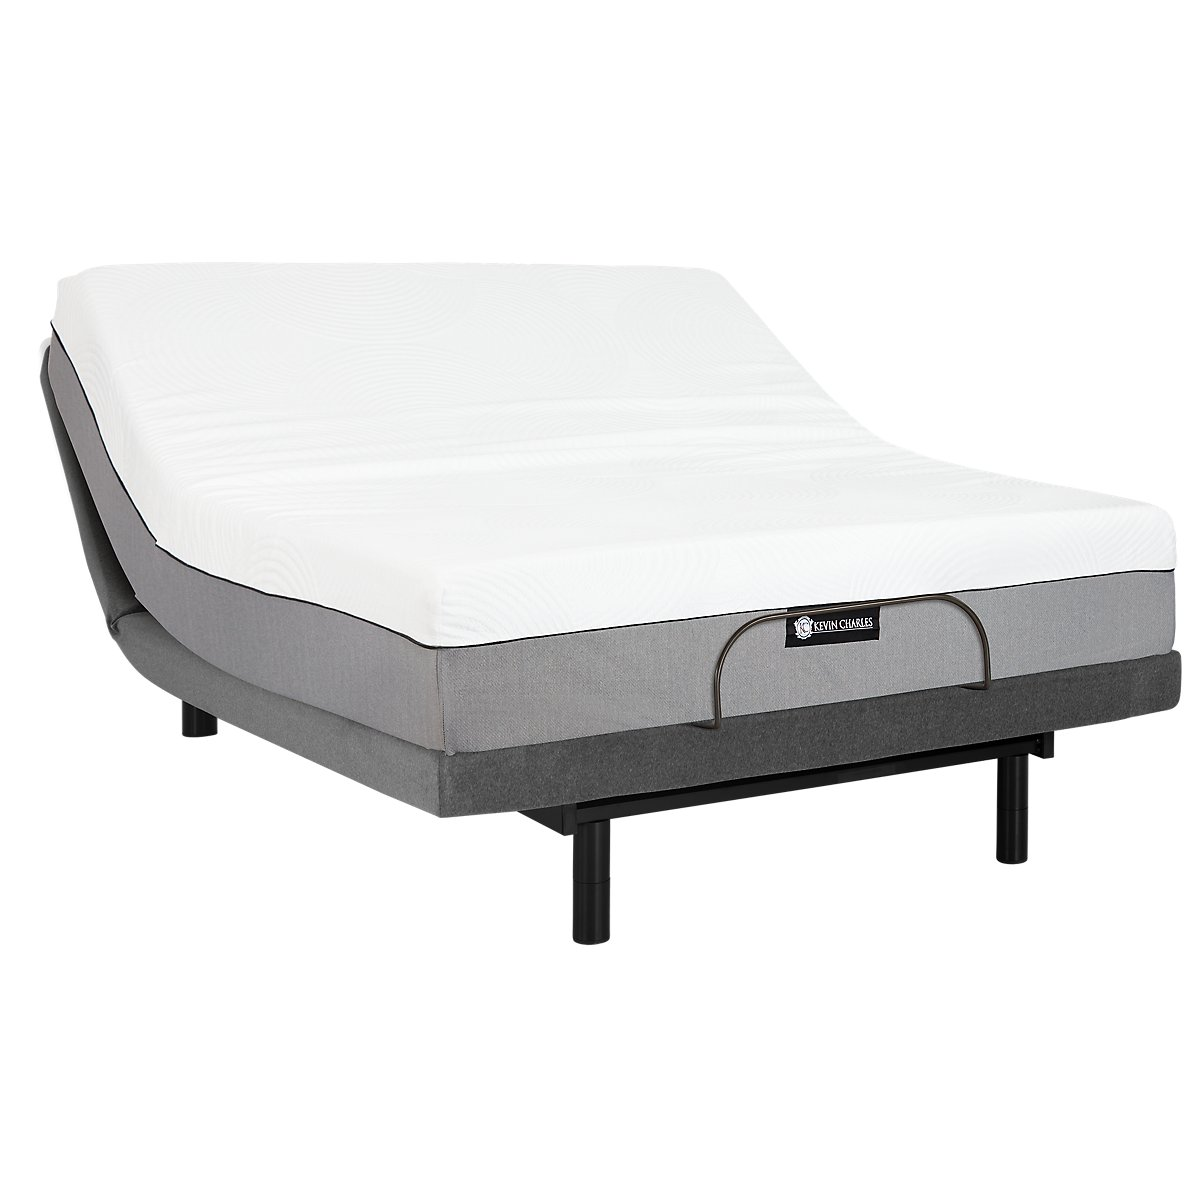 City furniture bliss plush memory foam select adjustable mattress set Memory foam mattress set